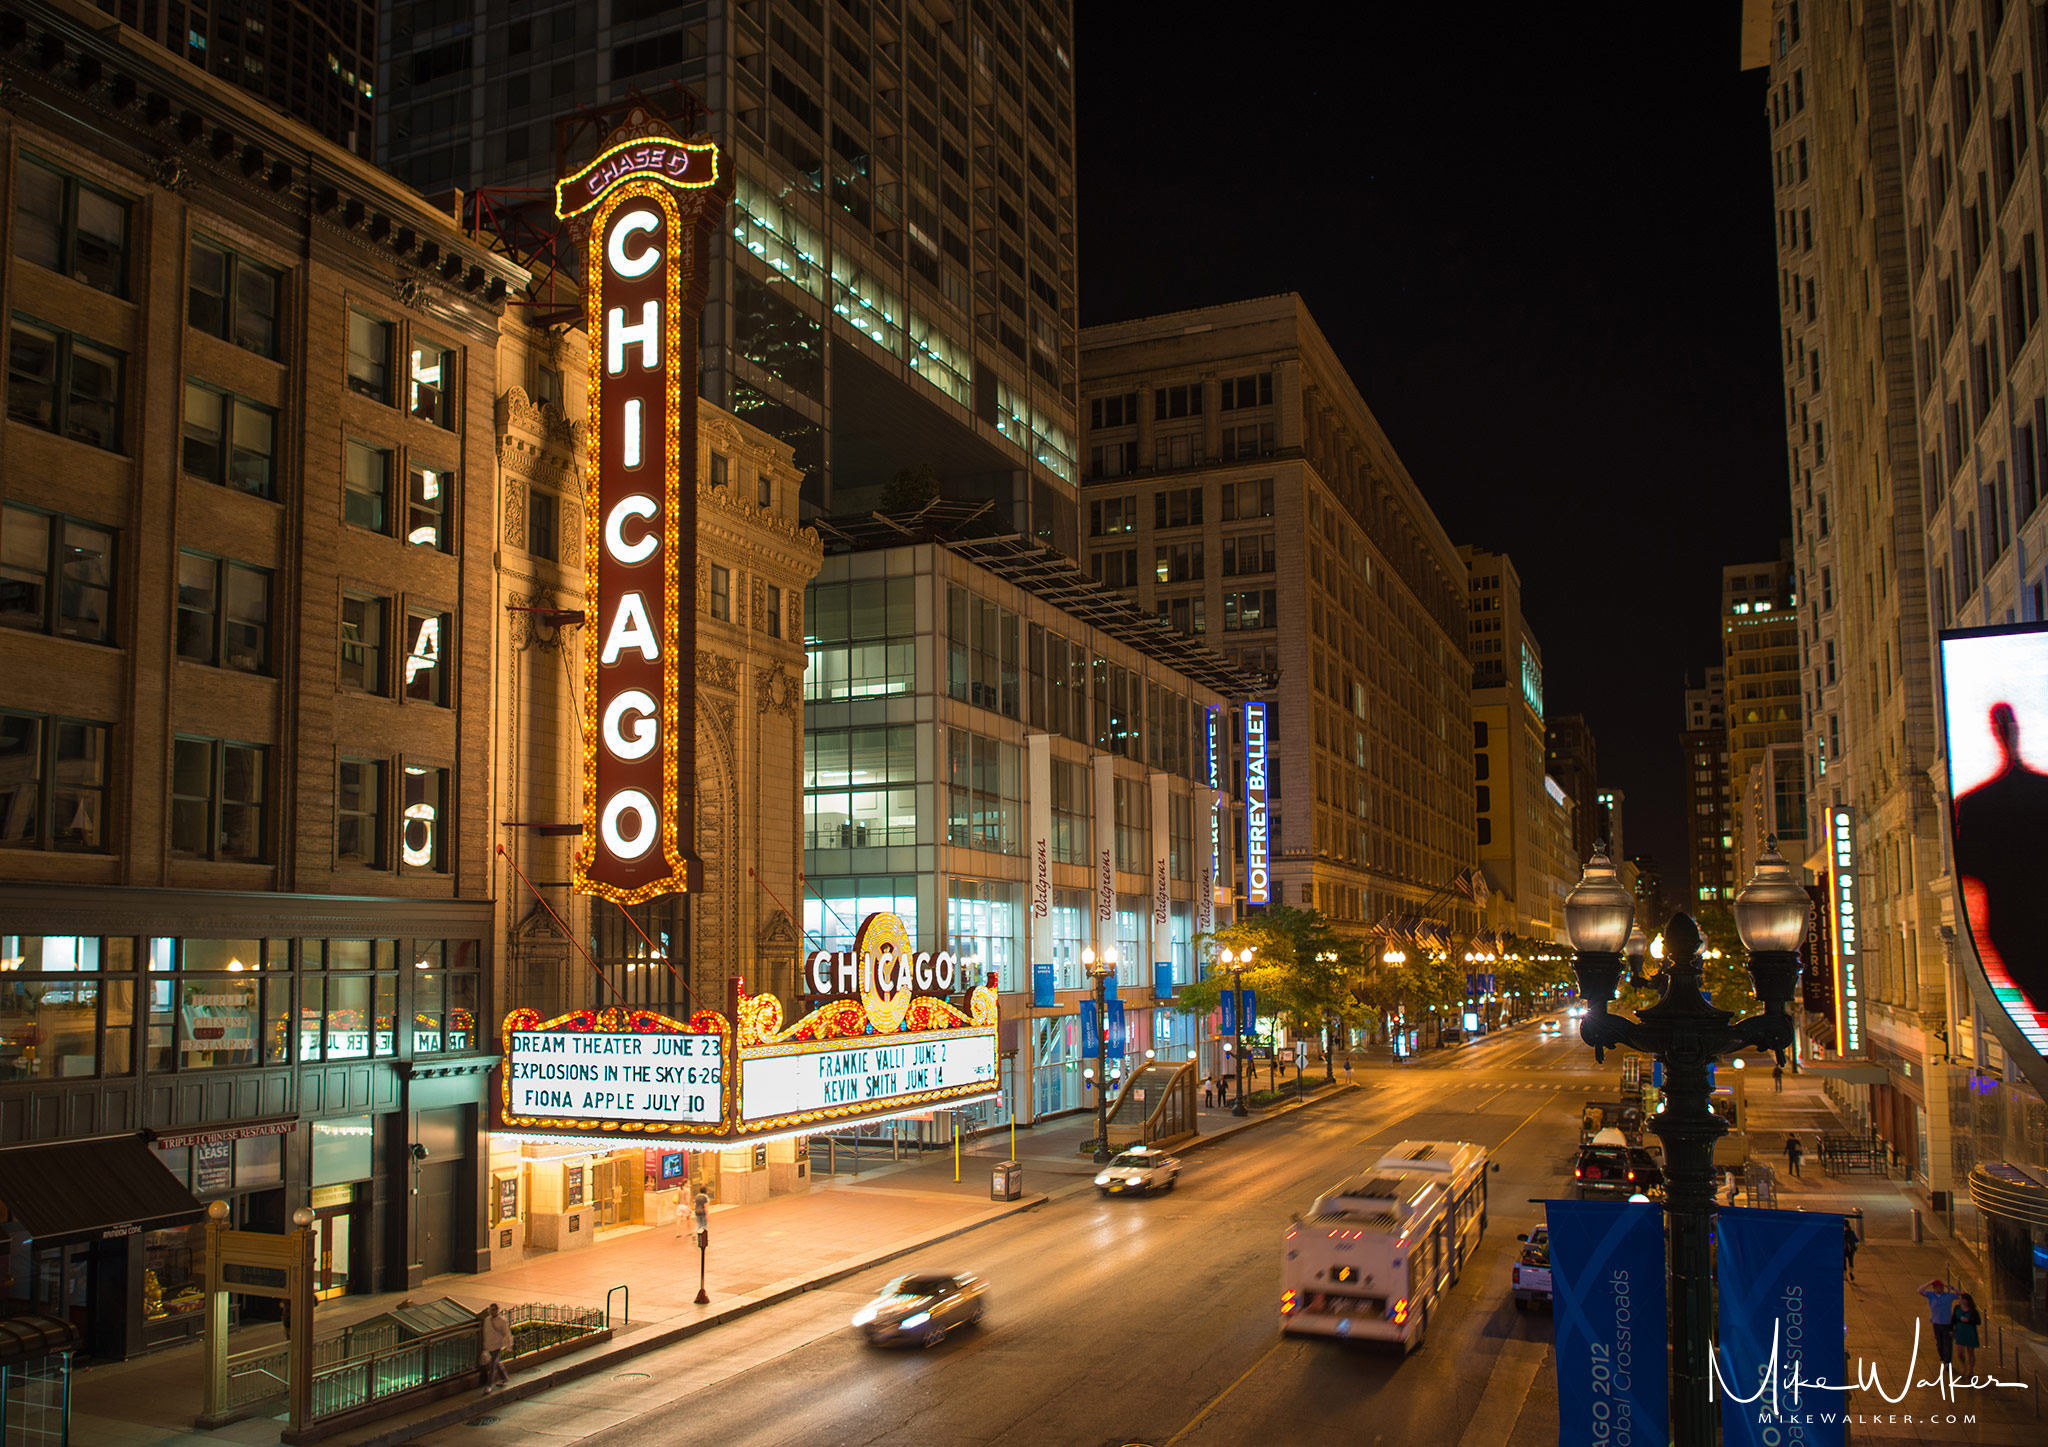 World famous Chicago theater. Travel photography by Mike Walker.